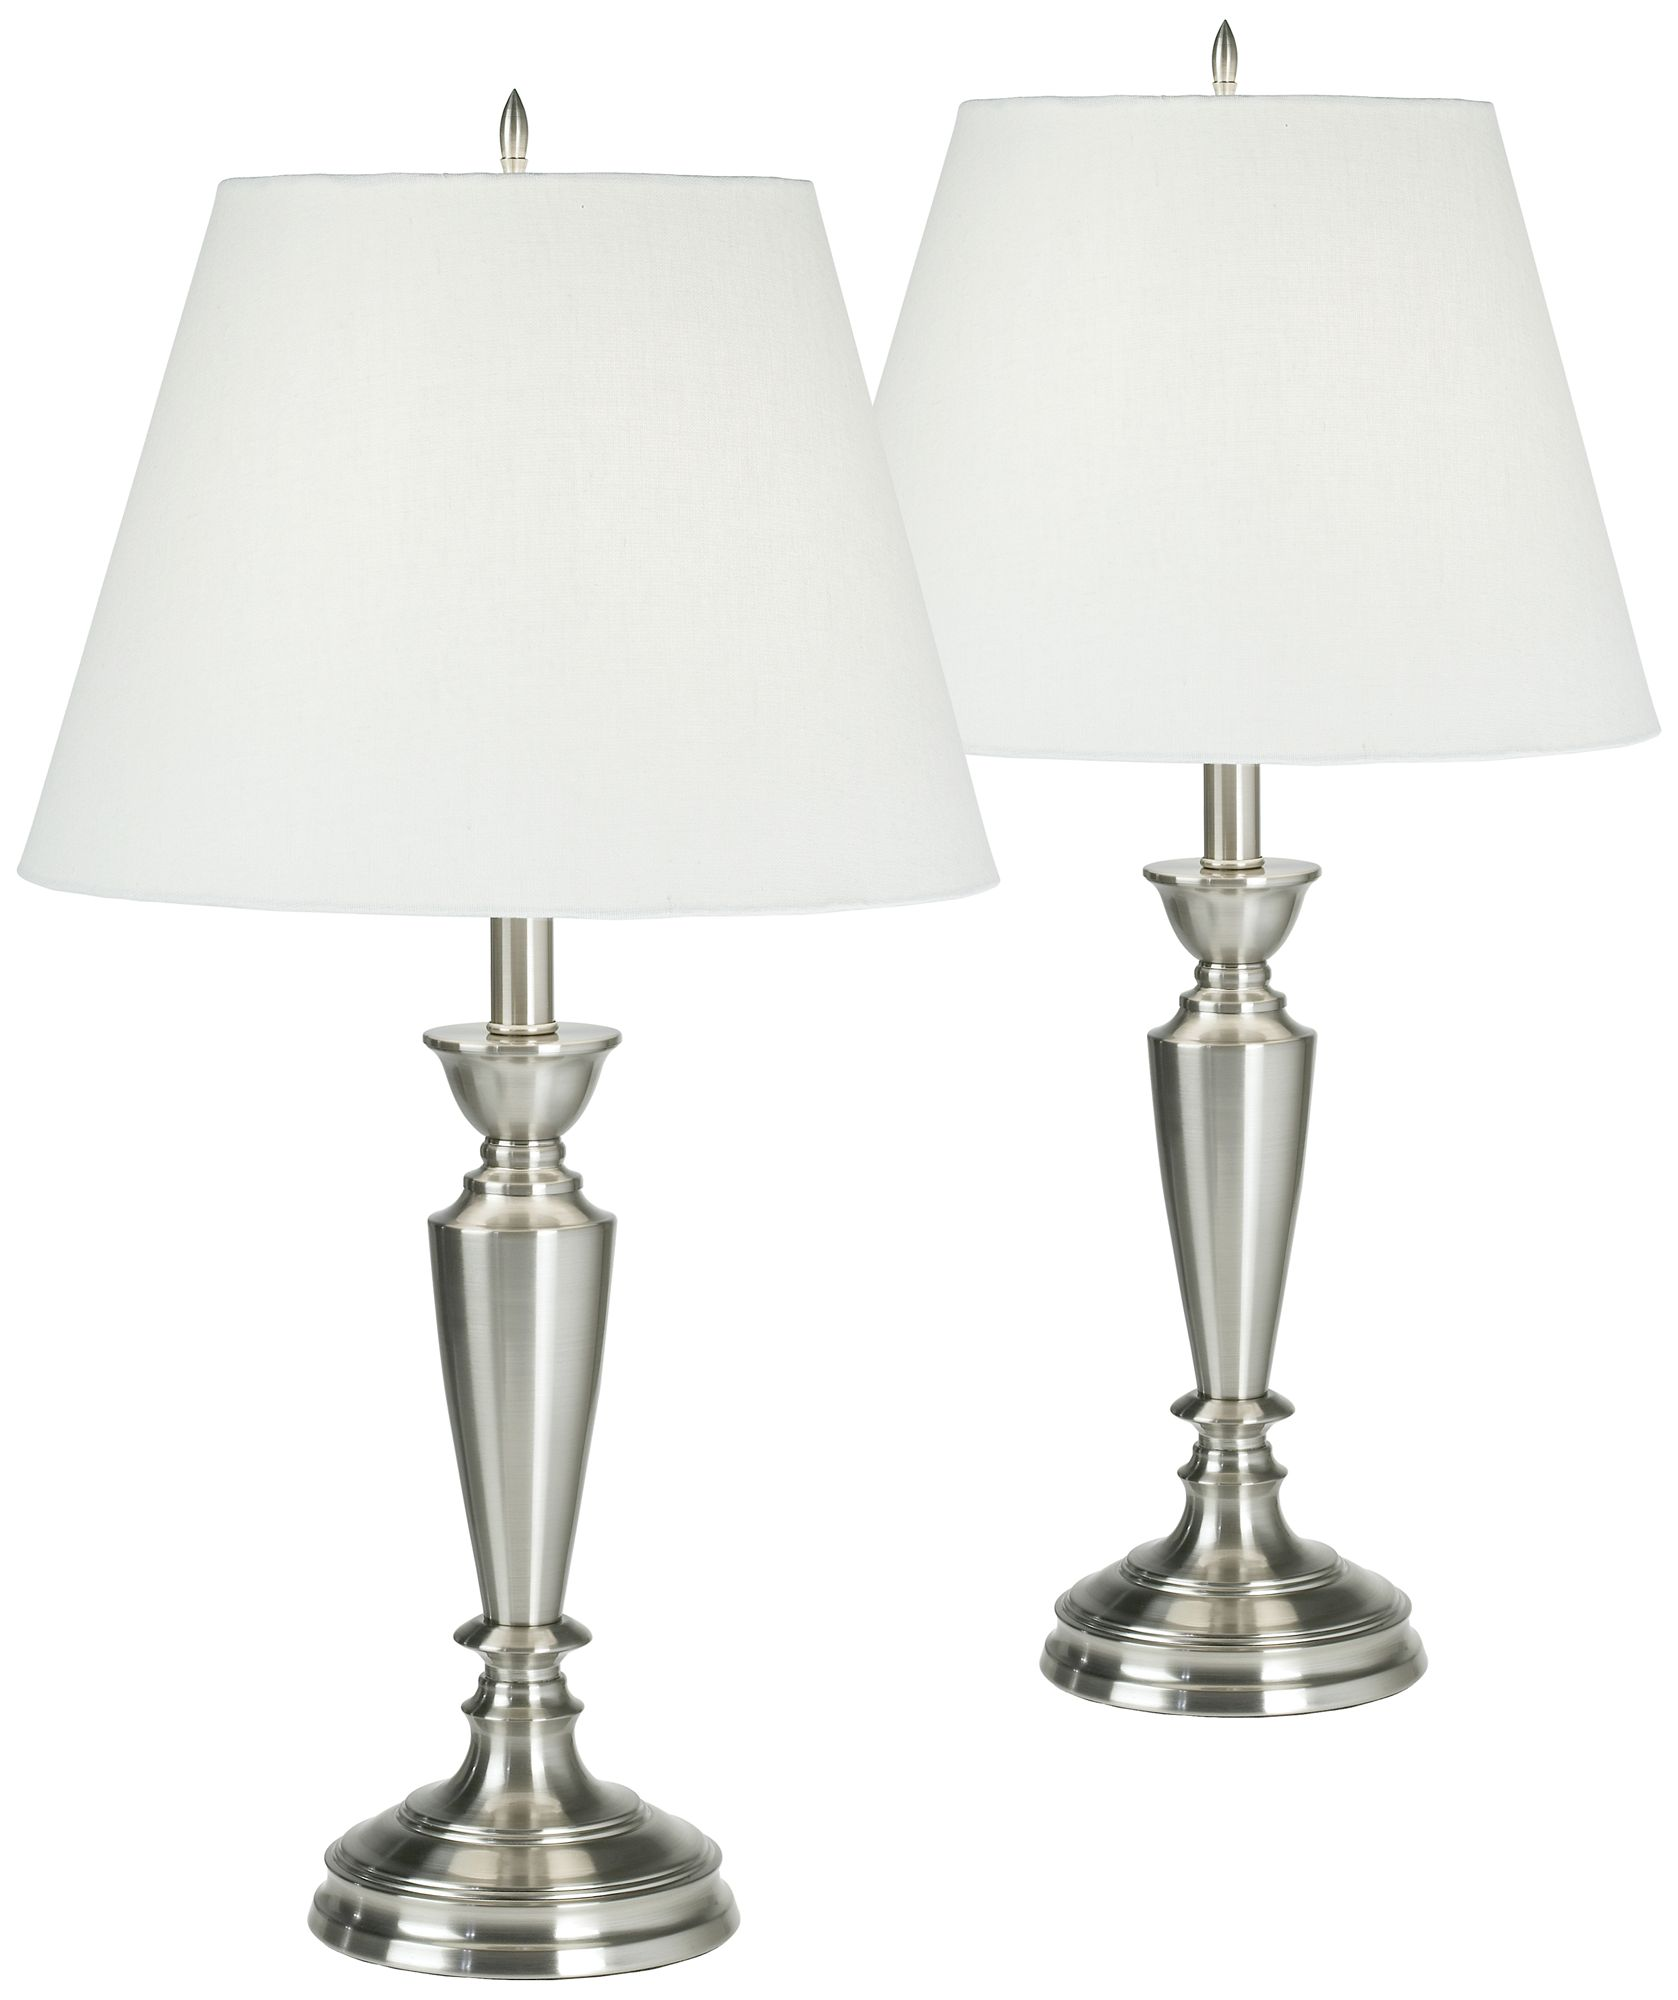 Set Of Two Brushed Steel Table Lamps